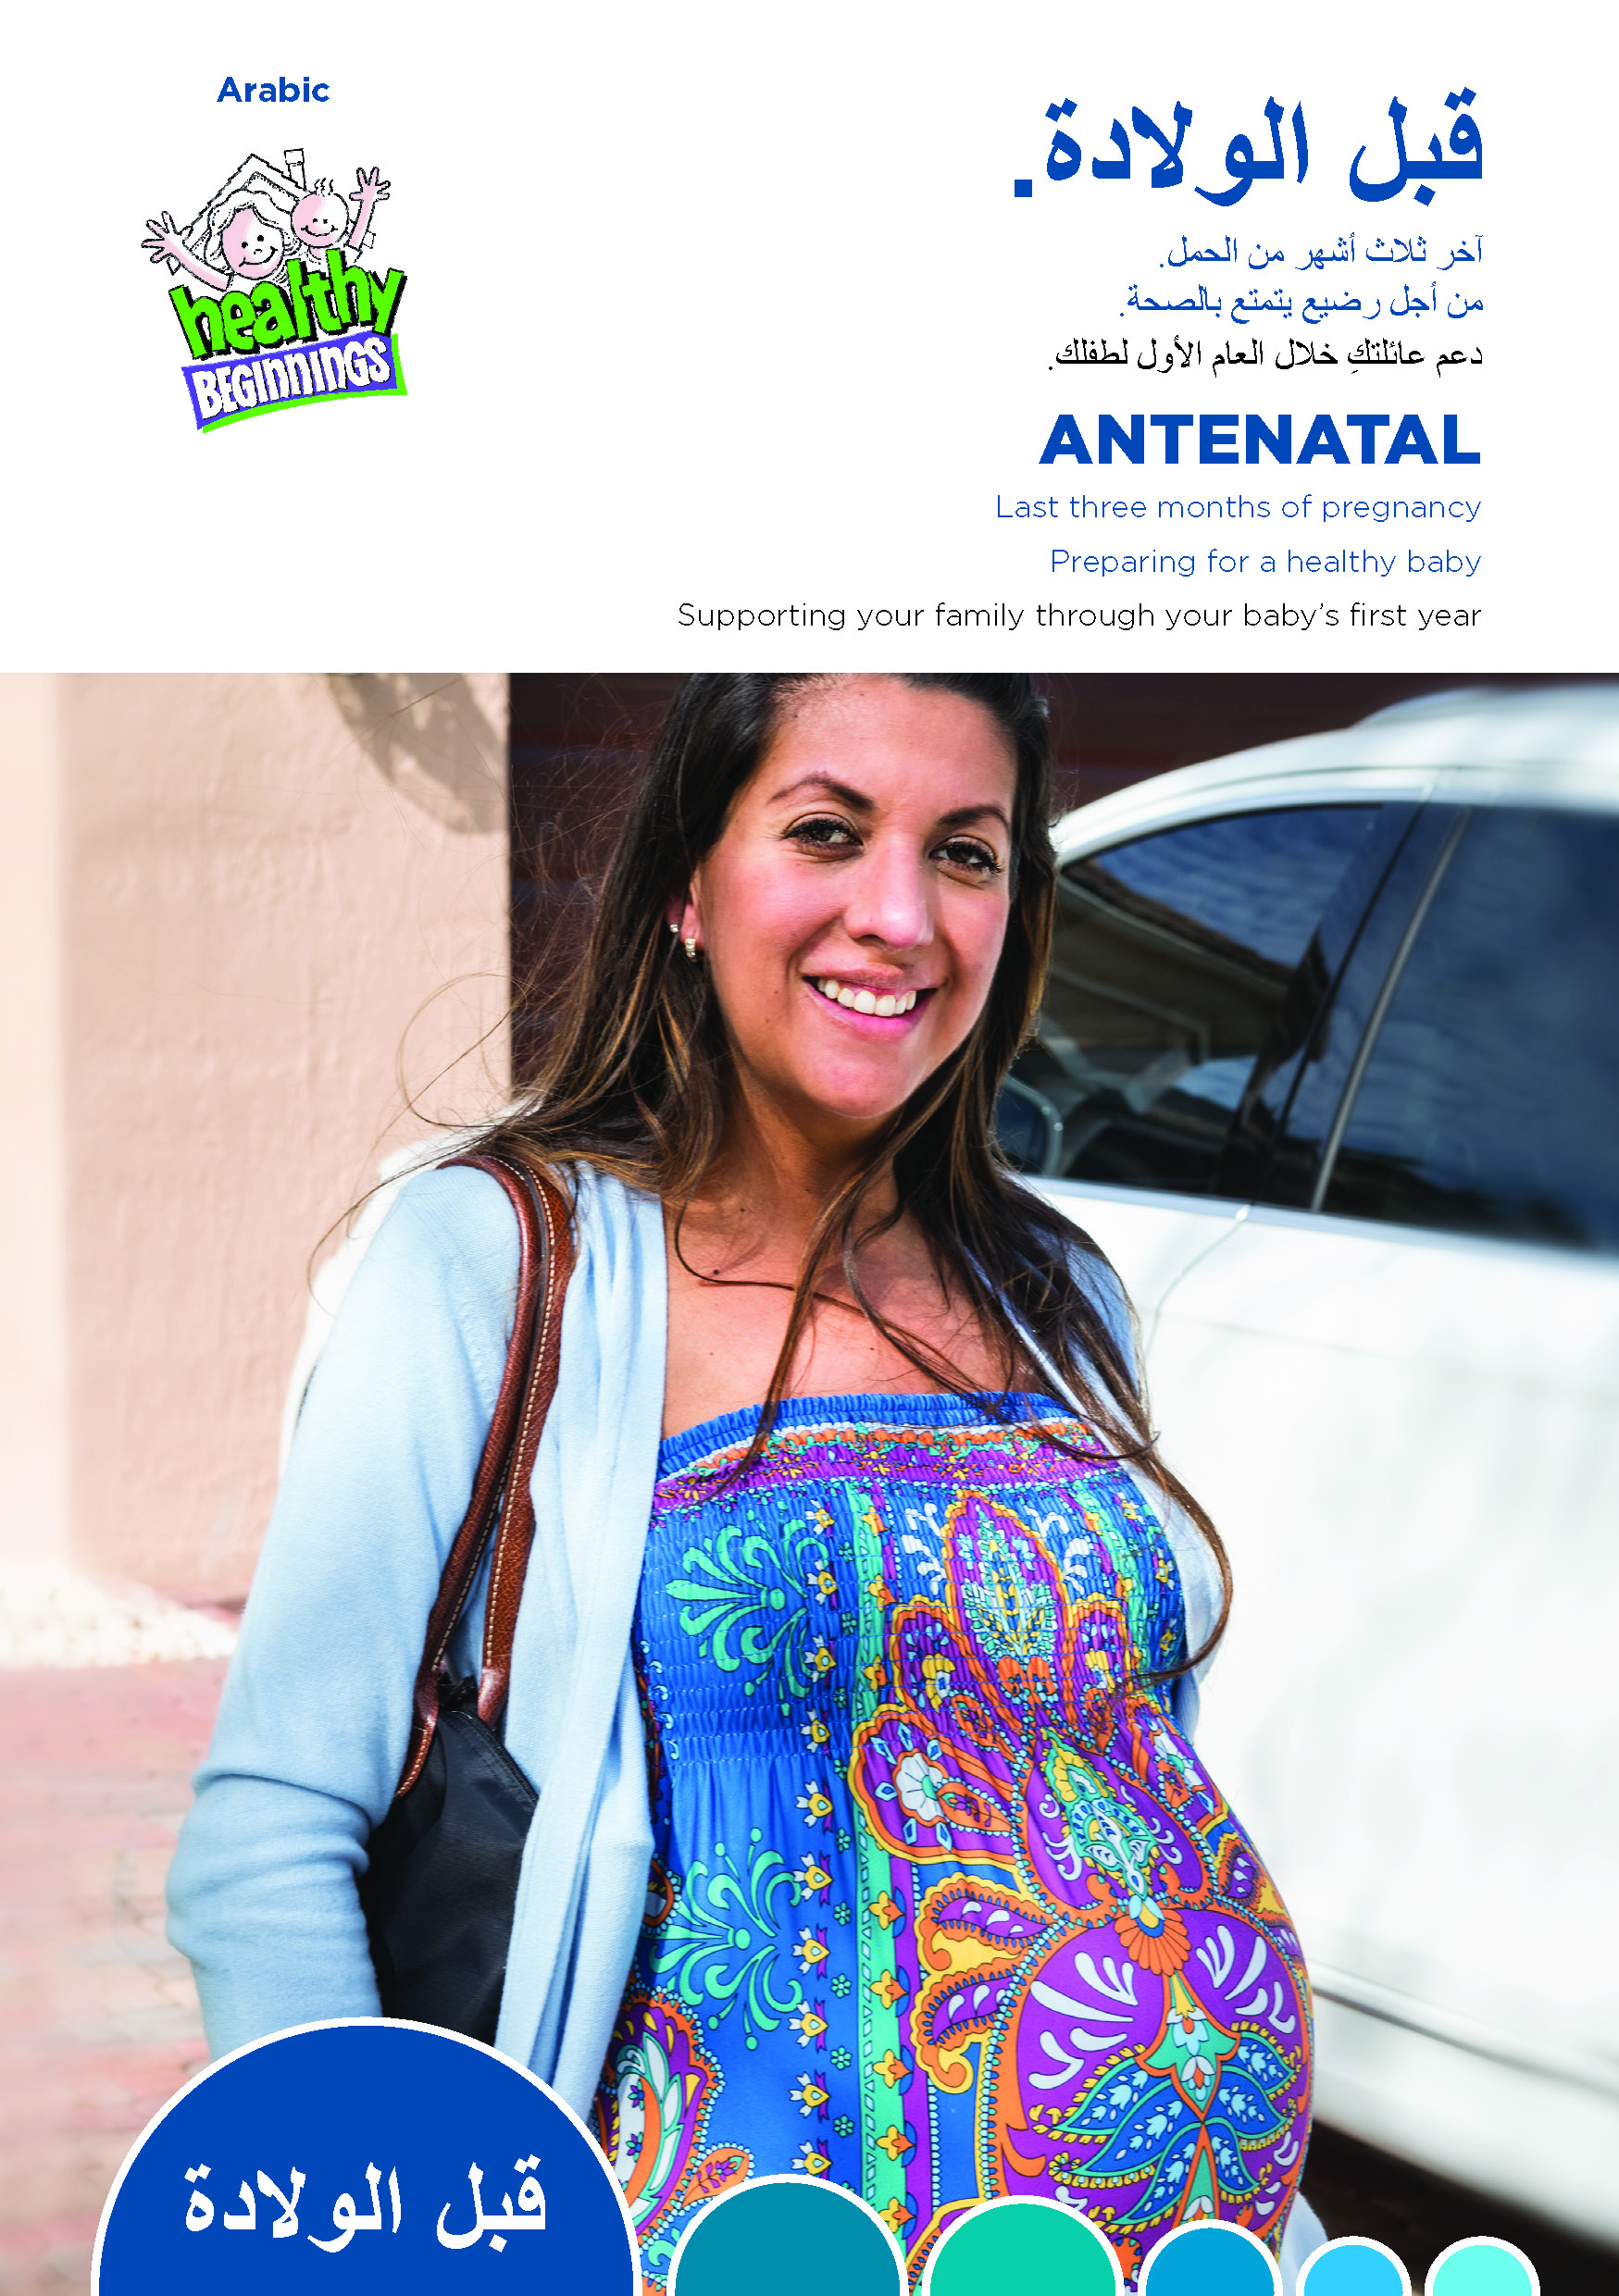 BOOKLET 1 ANTENATAL ARABIC_v6 (FINAL).jpg